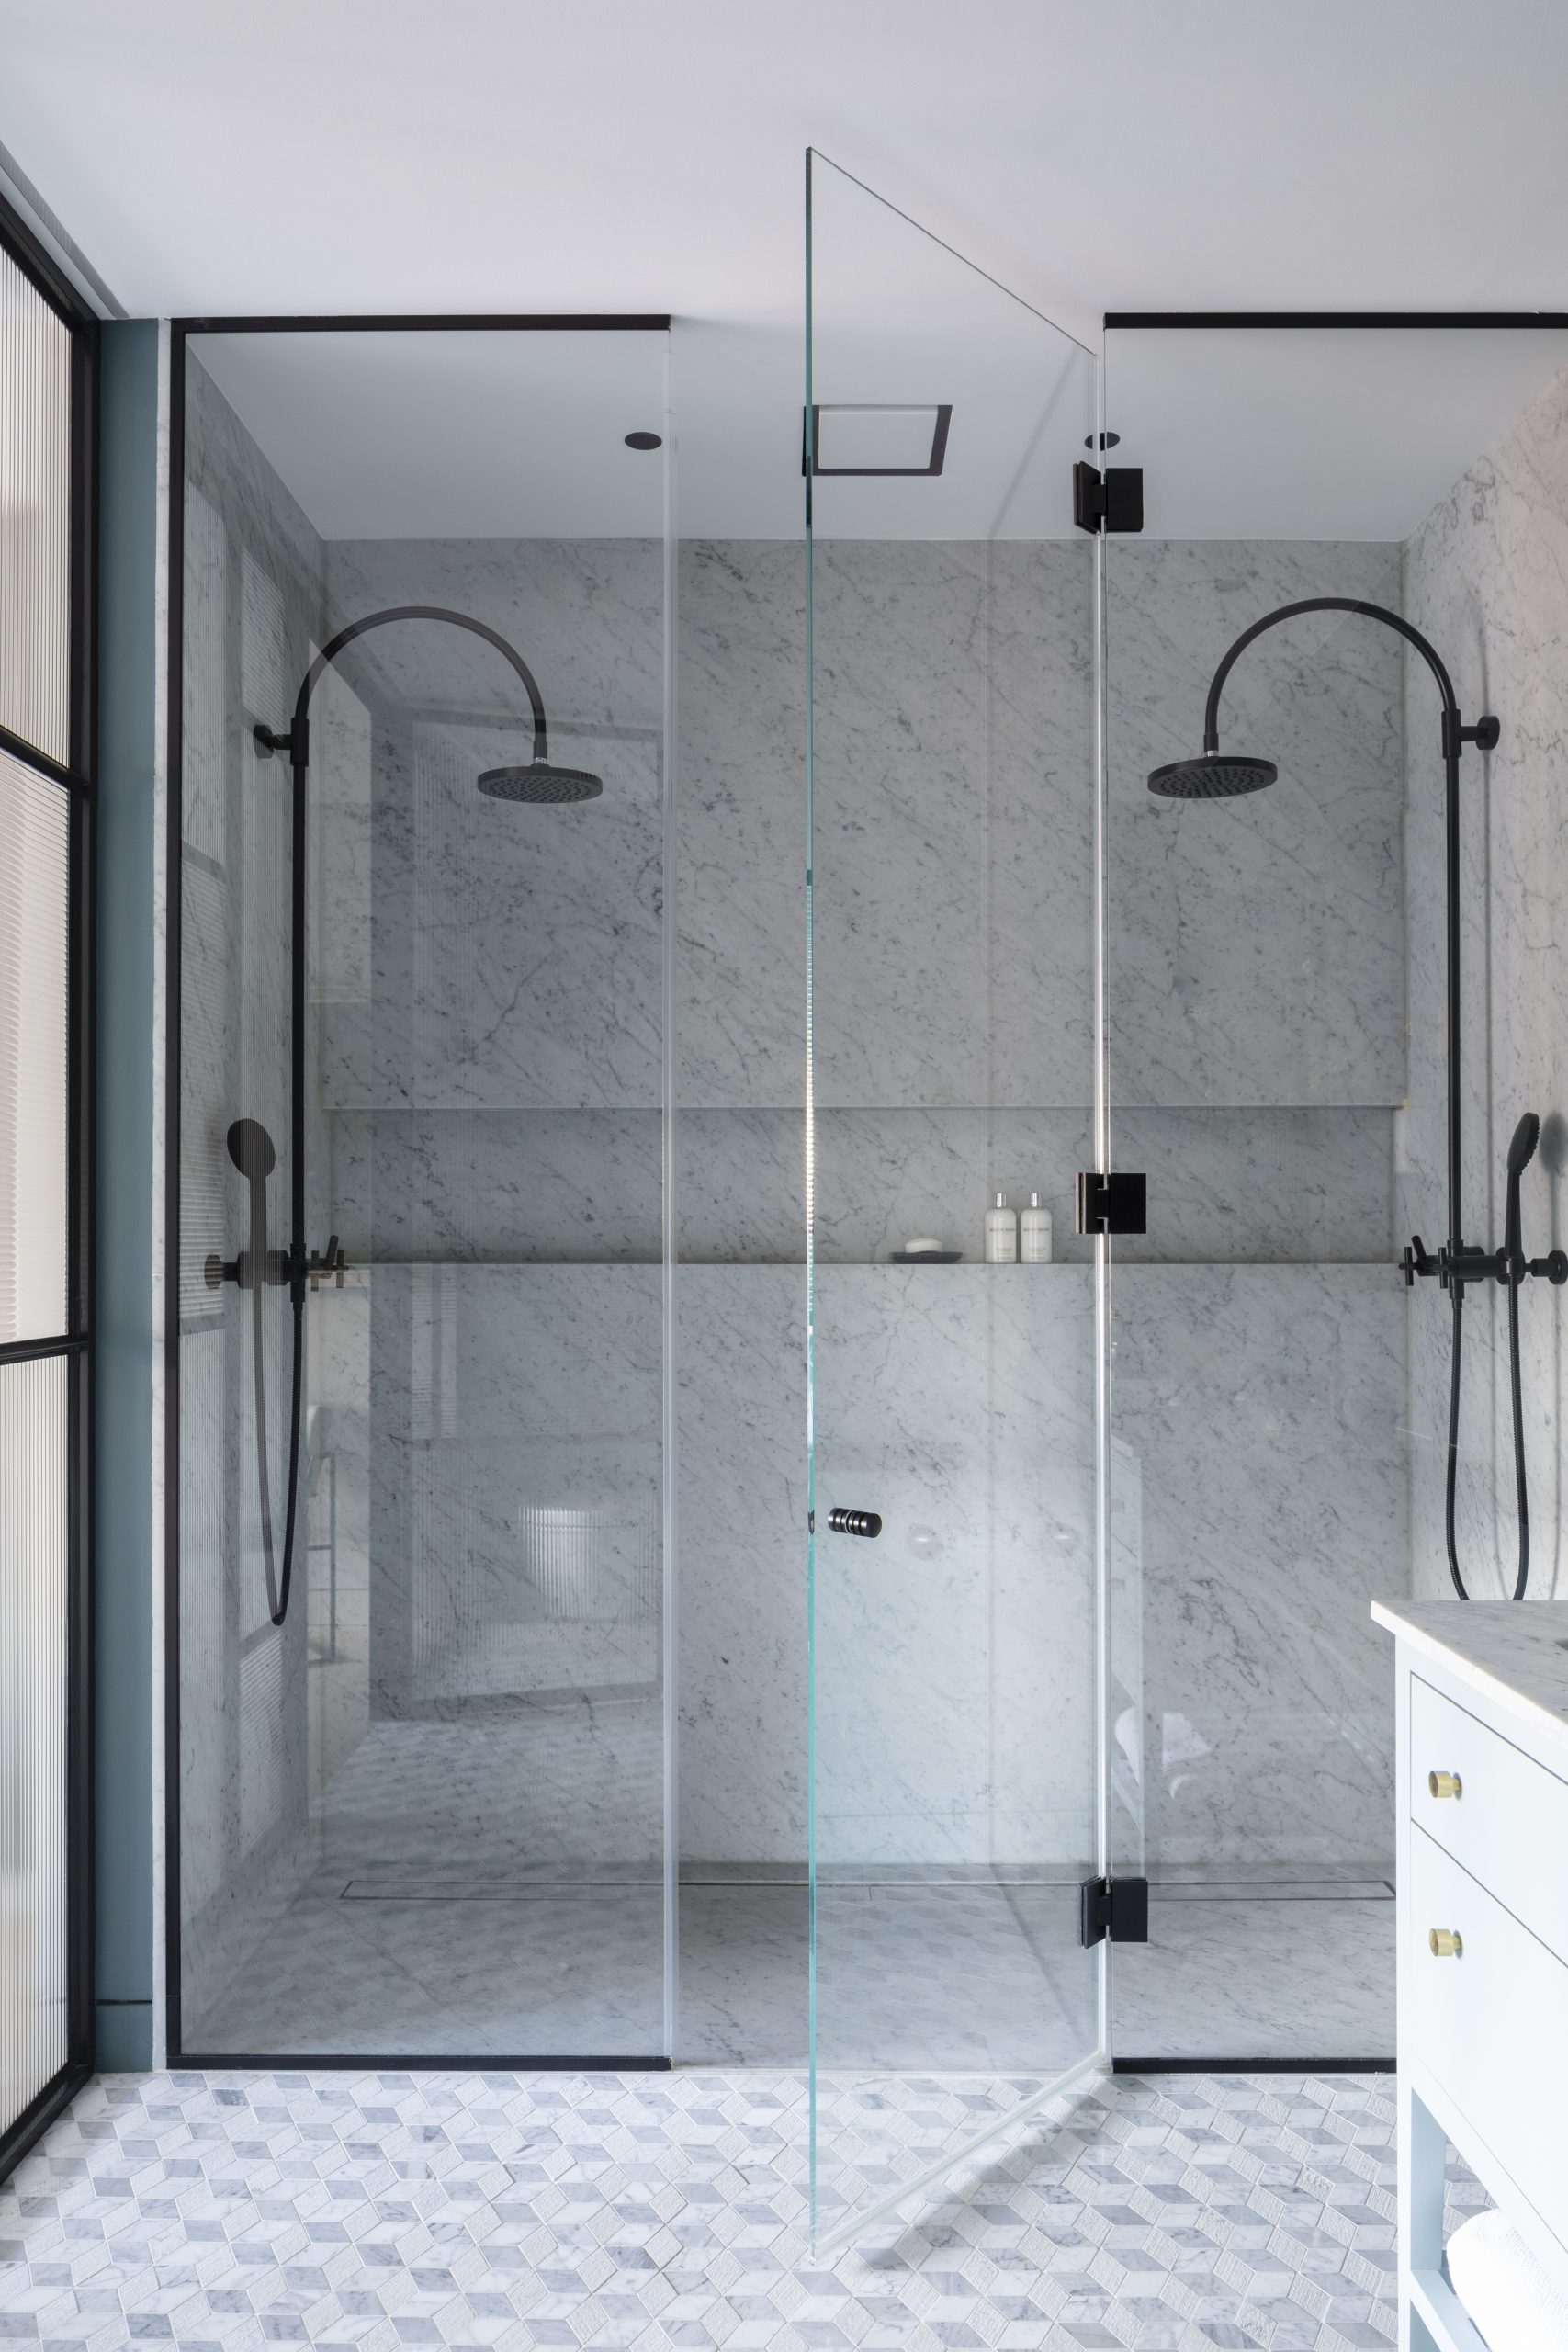 Shower room ideas. Gunter